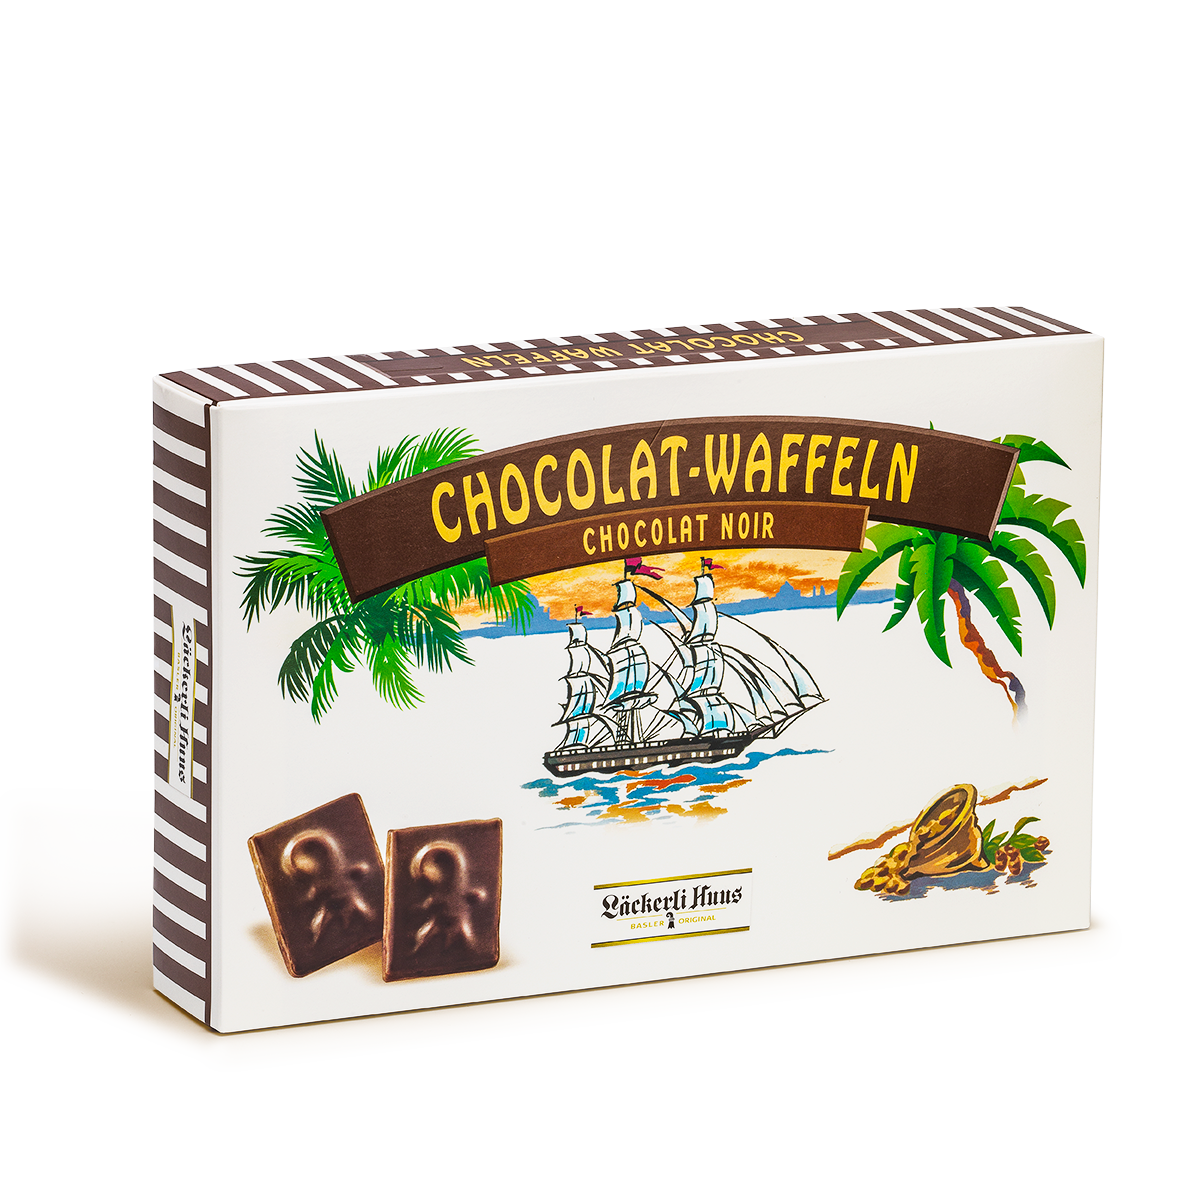 Chocolate wafers noir 390g